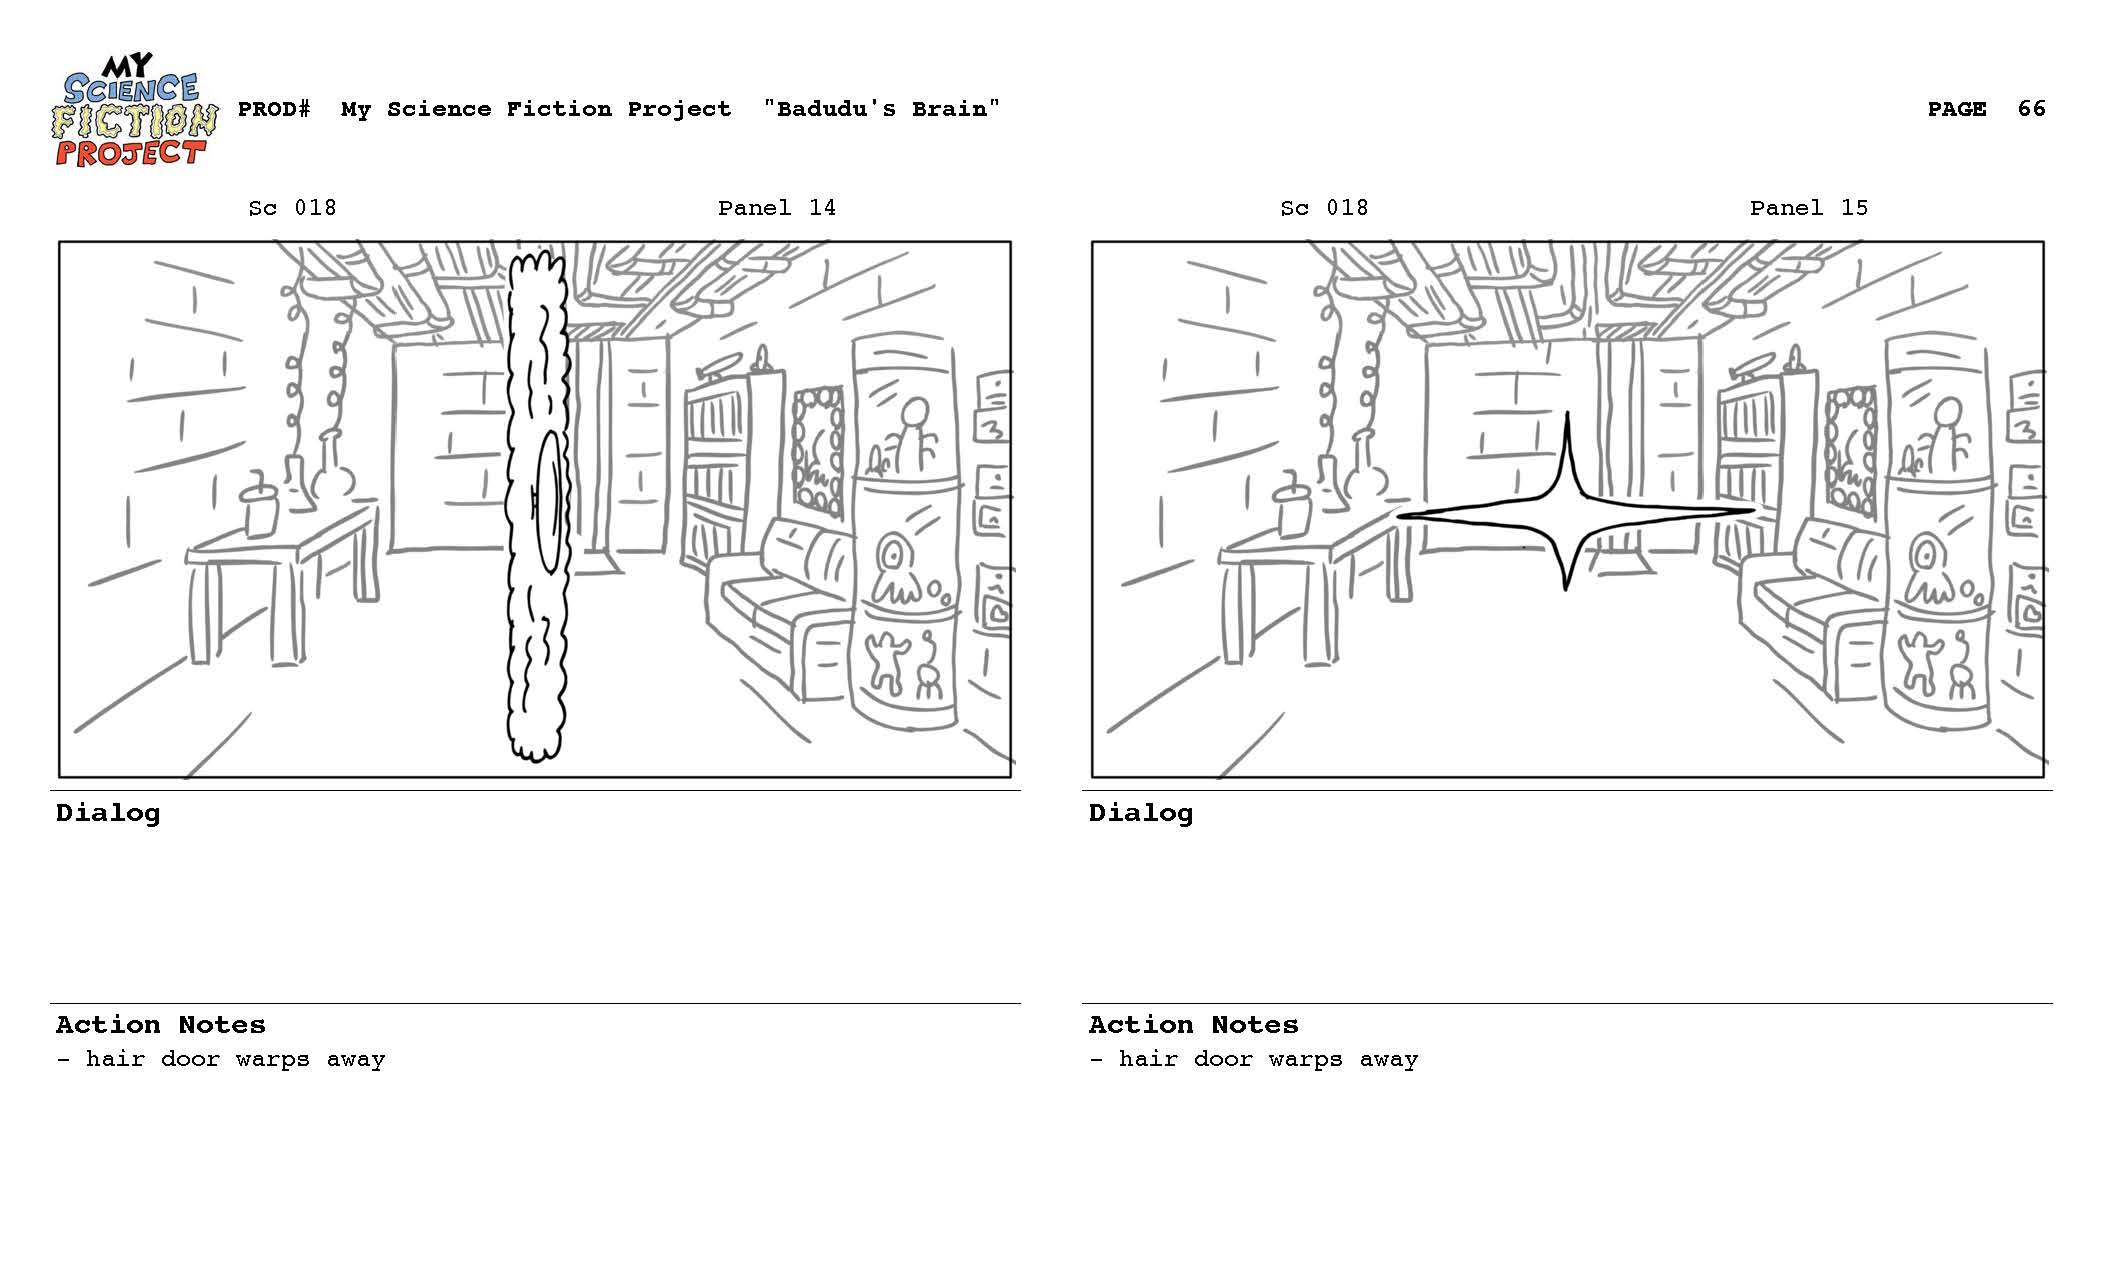 My_Science_Fiction_Project_SB_083112_reduced_Page_066.jpg